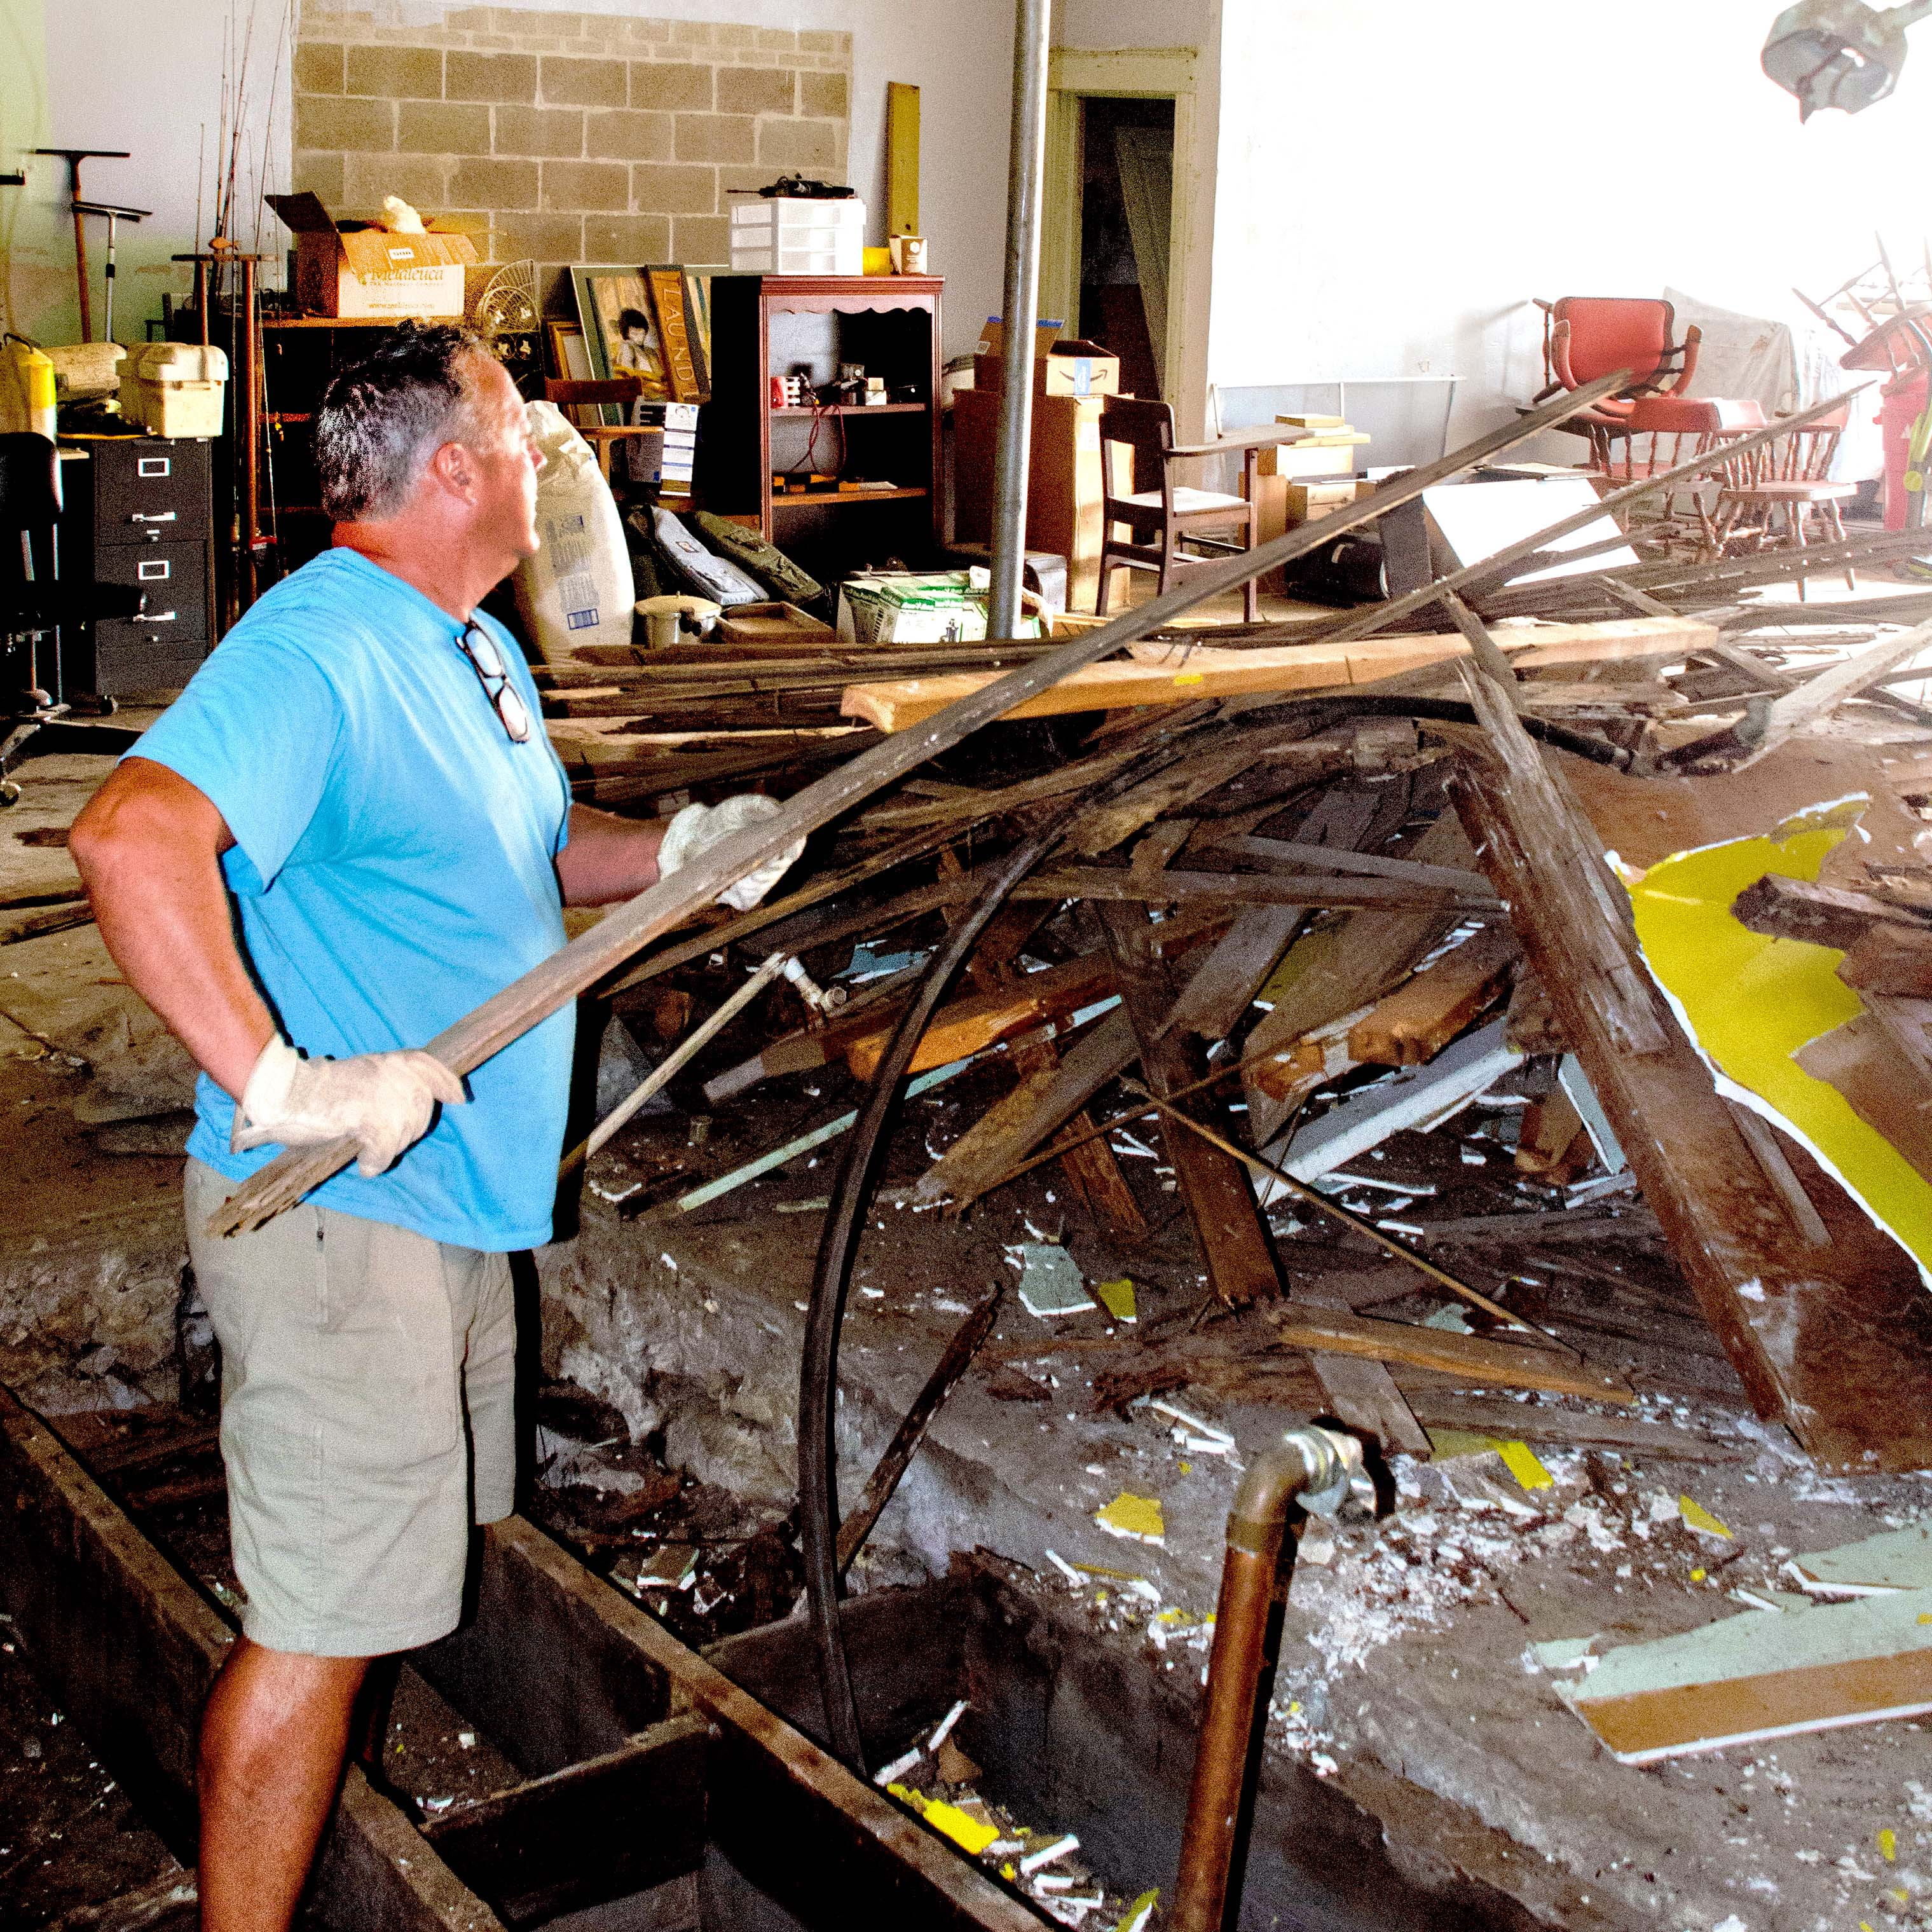 While Josh Fistler smears sauce on a homemade crust, volunteers Jay Gfeller and Larry Watts put toppings on the pizzas Friday at American Legion pizza night.